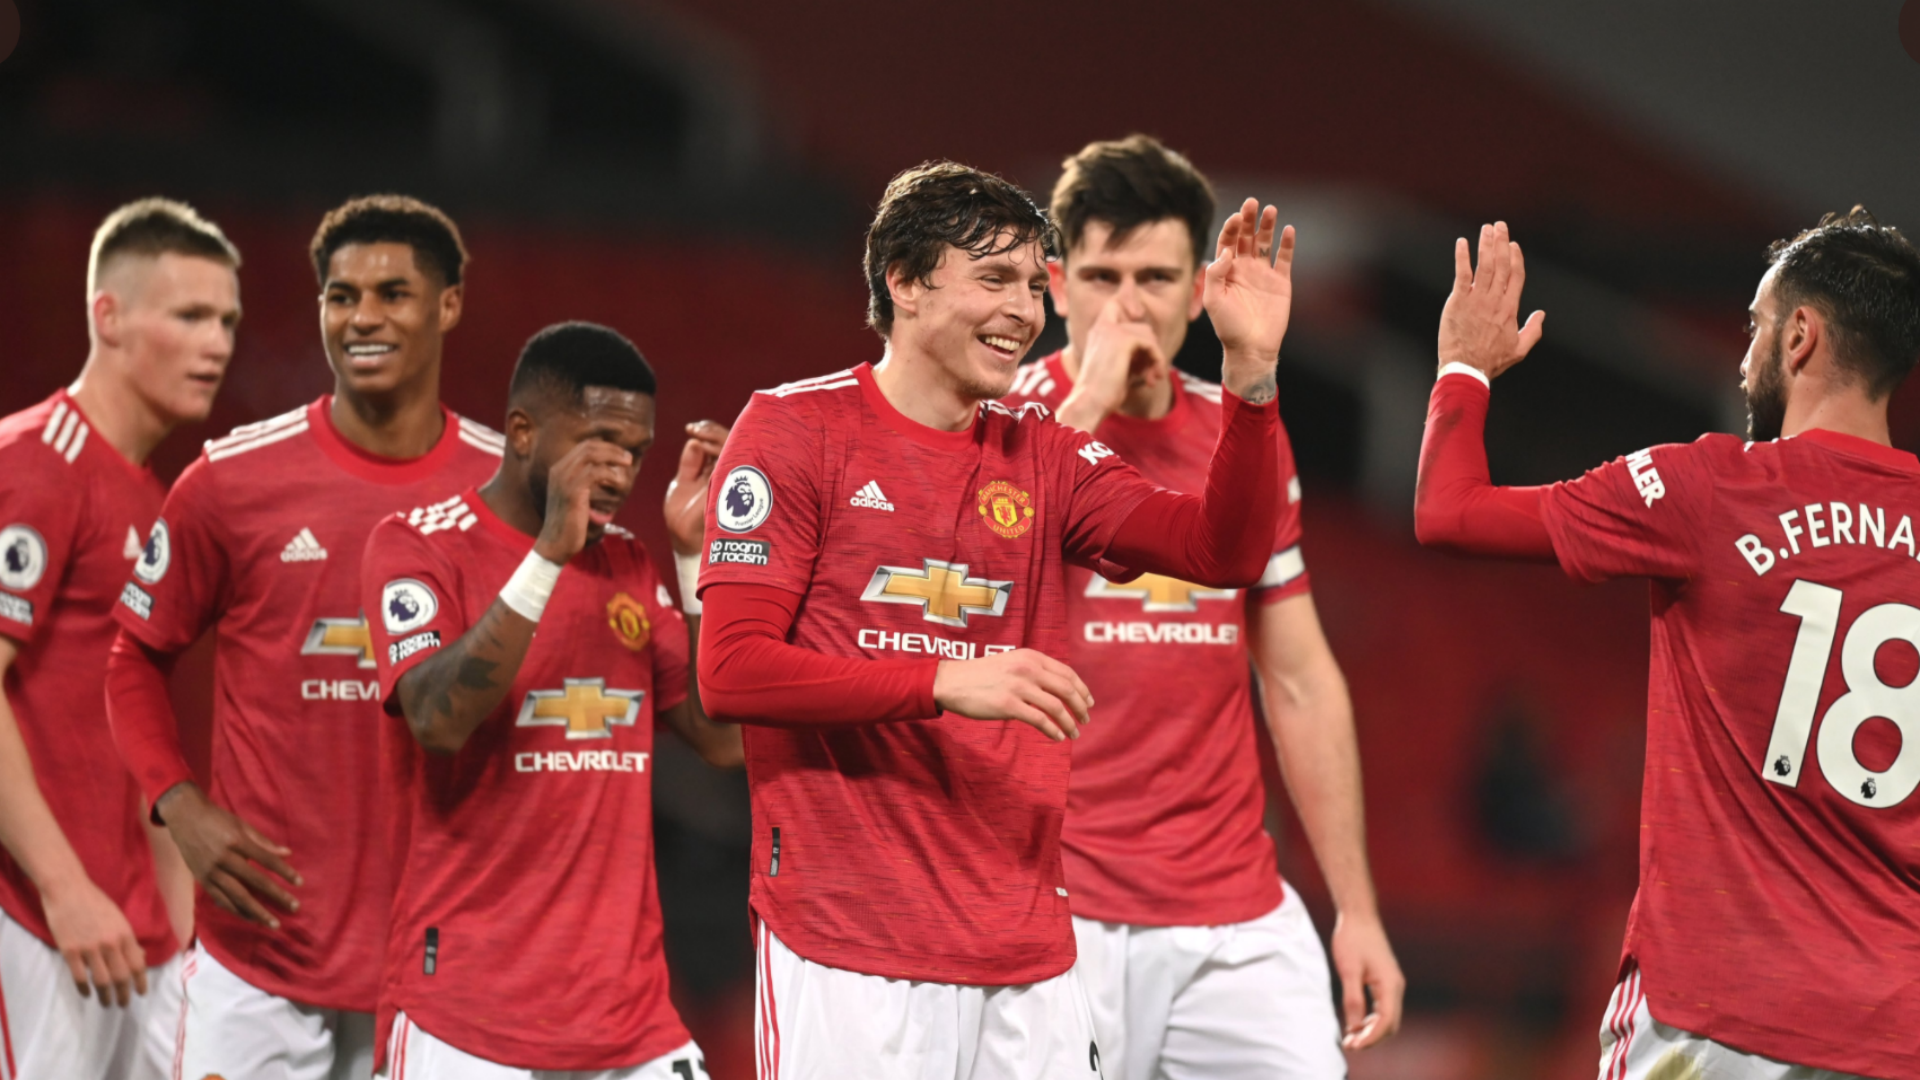 Premier League Data Dive: Record-setting McTominay helps Man Utd run riot, Rodgers ends Mourinho streak